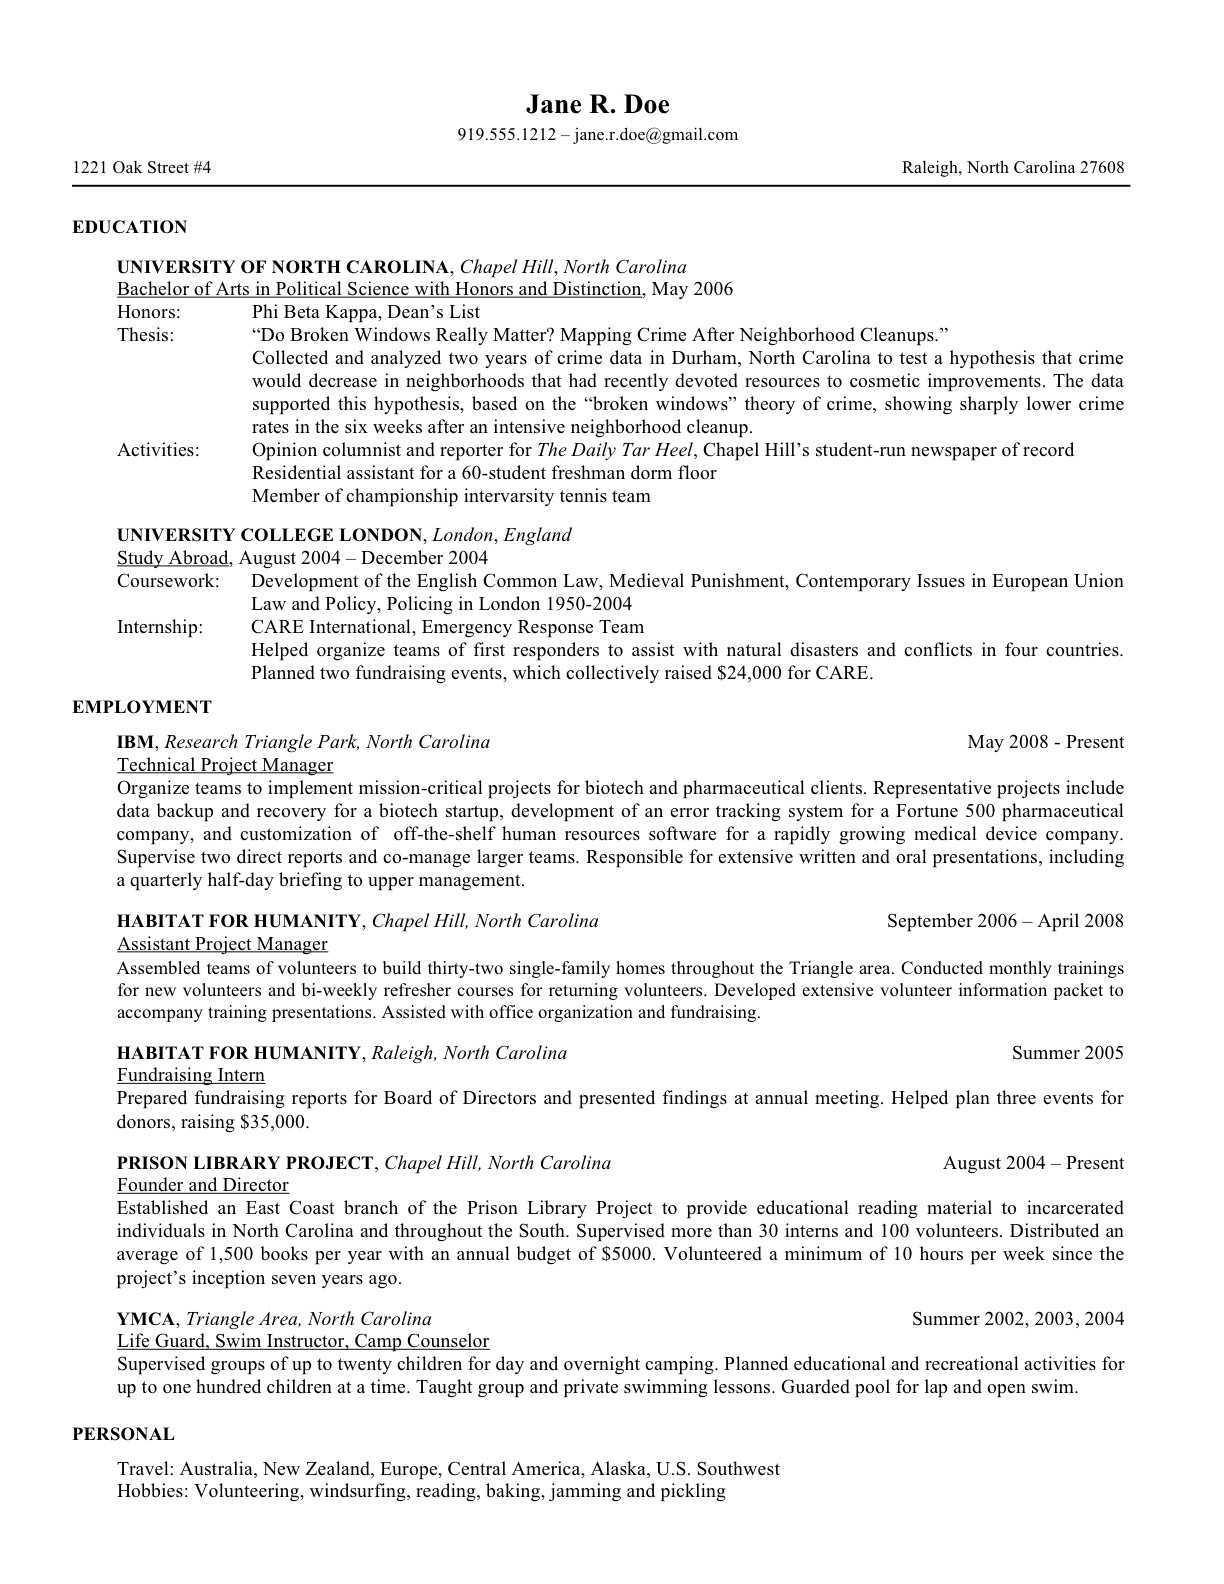 law school resume templates prepping your for of university at study abroad experience on Resume Study Abroad Experience On Resume